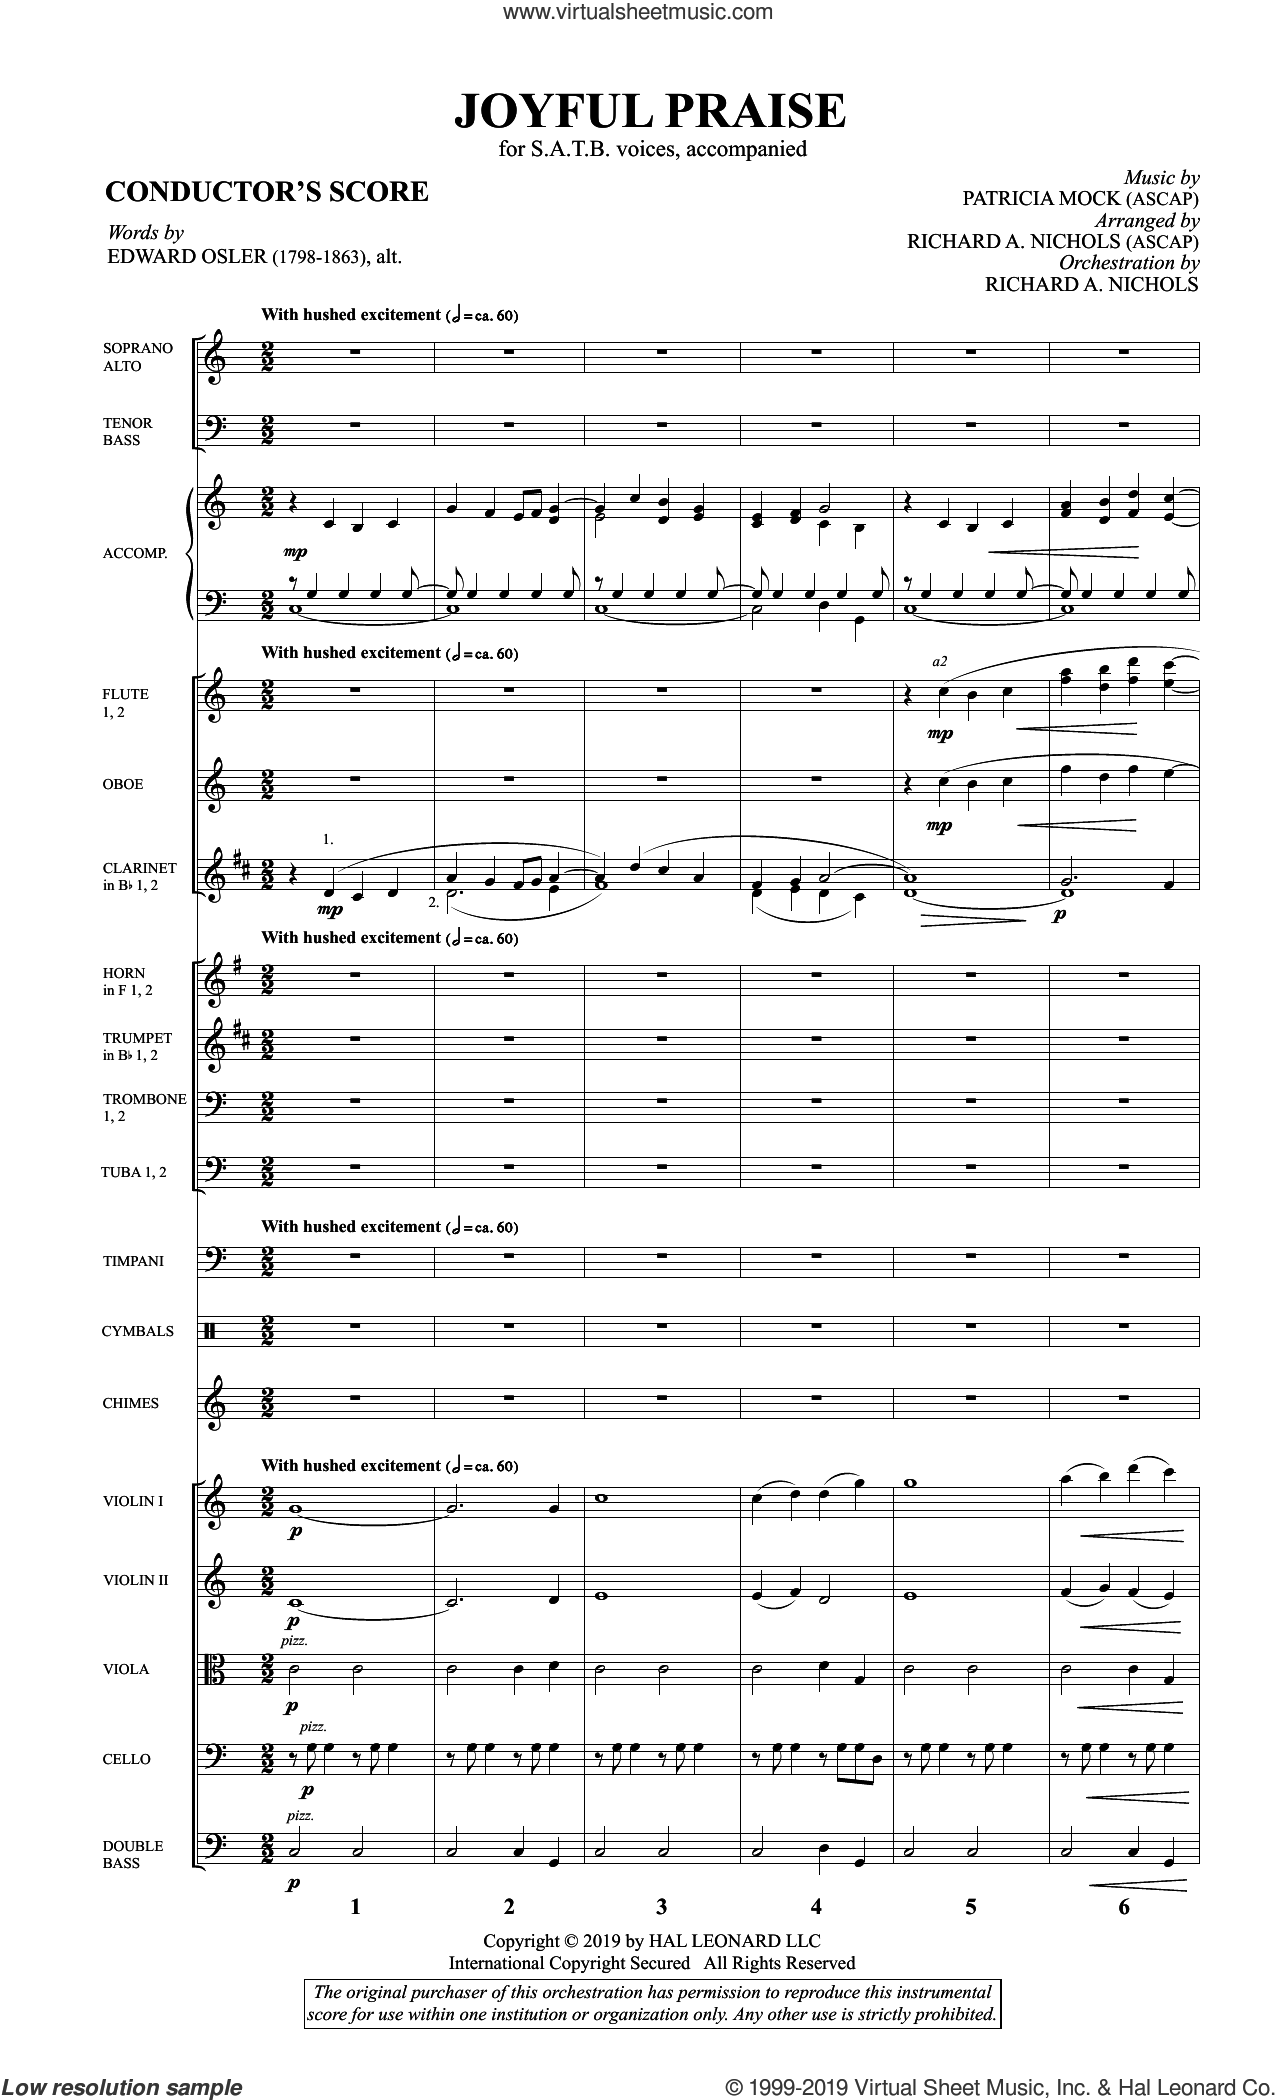 Joyful Praise (COMPLETE) sheet music for orchestra/band by Patricia Mock, Richard A. Nichols and The Psalter, intermediate skill level